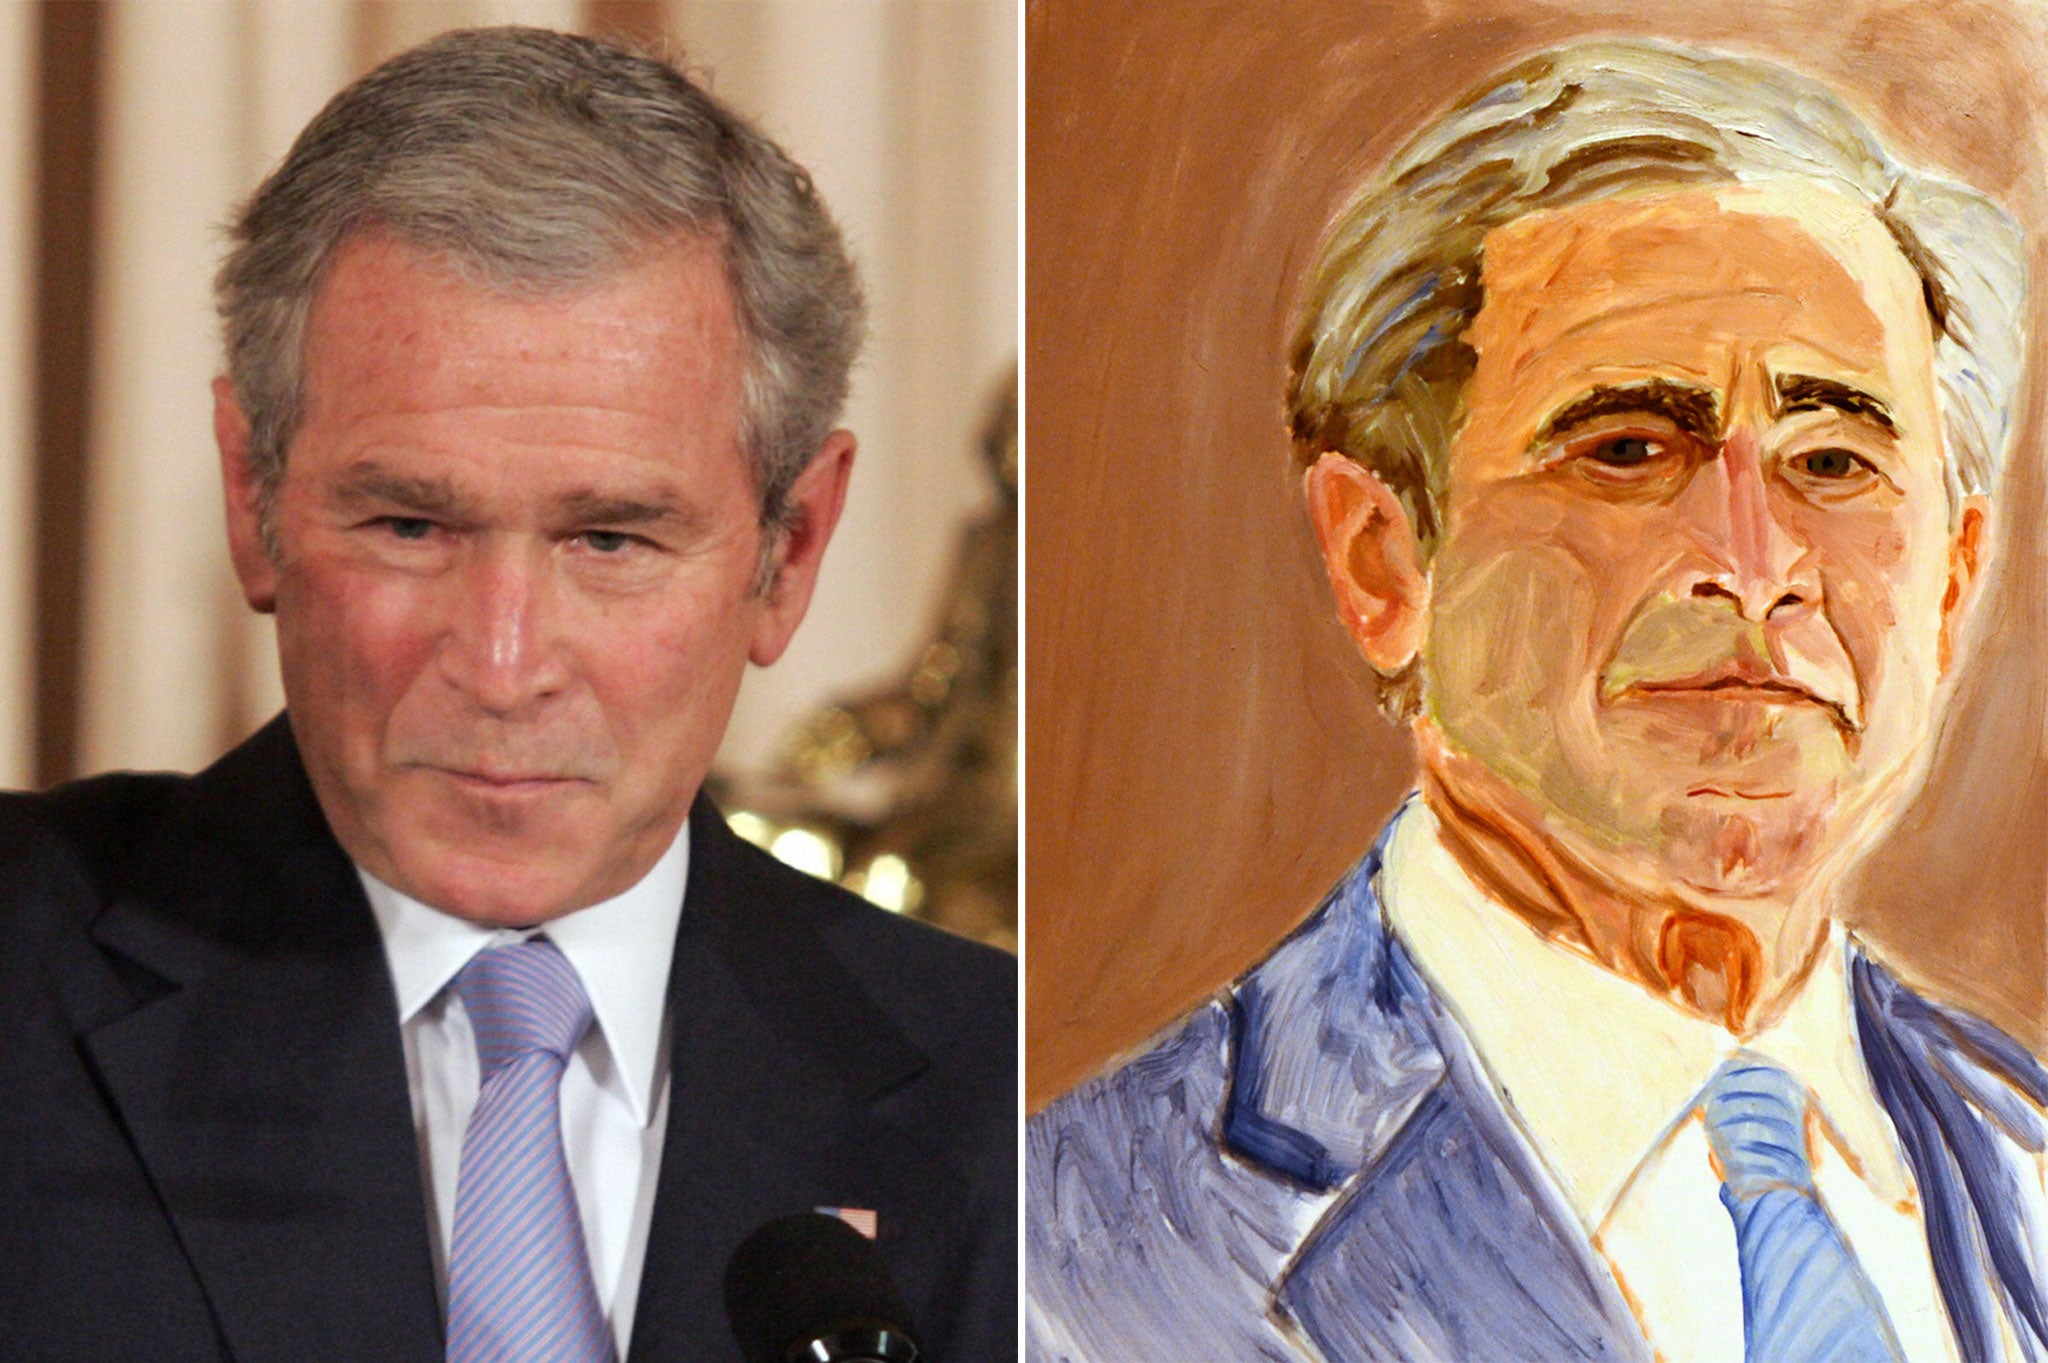 George Bush's paintings are 'copied off Google images and